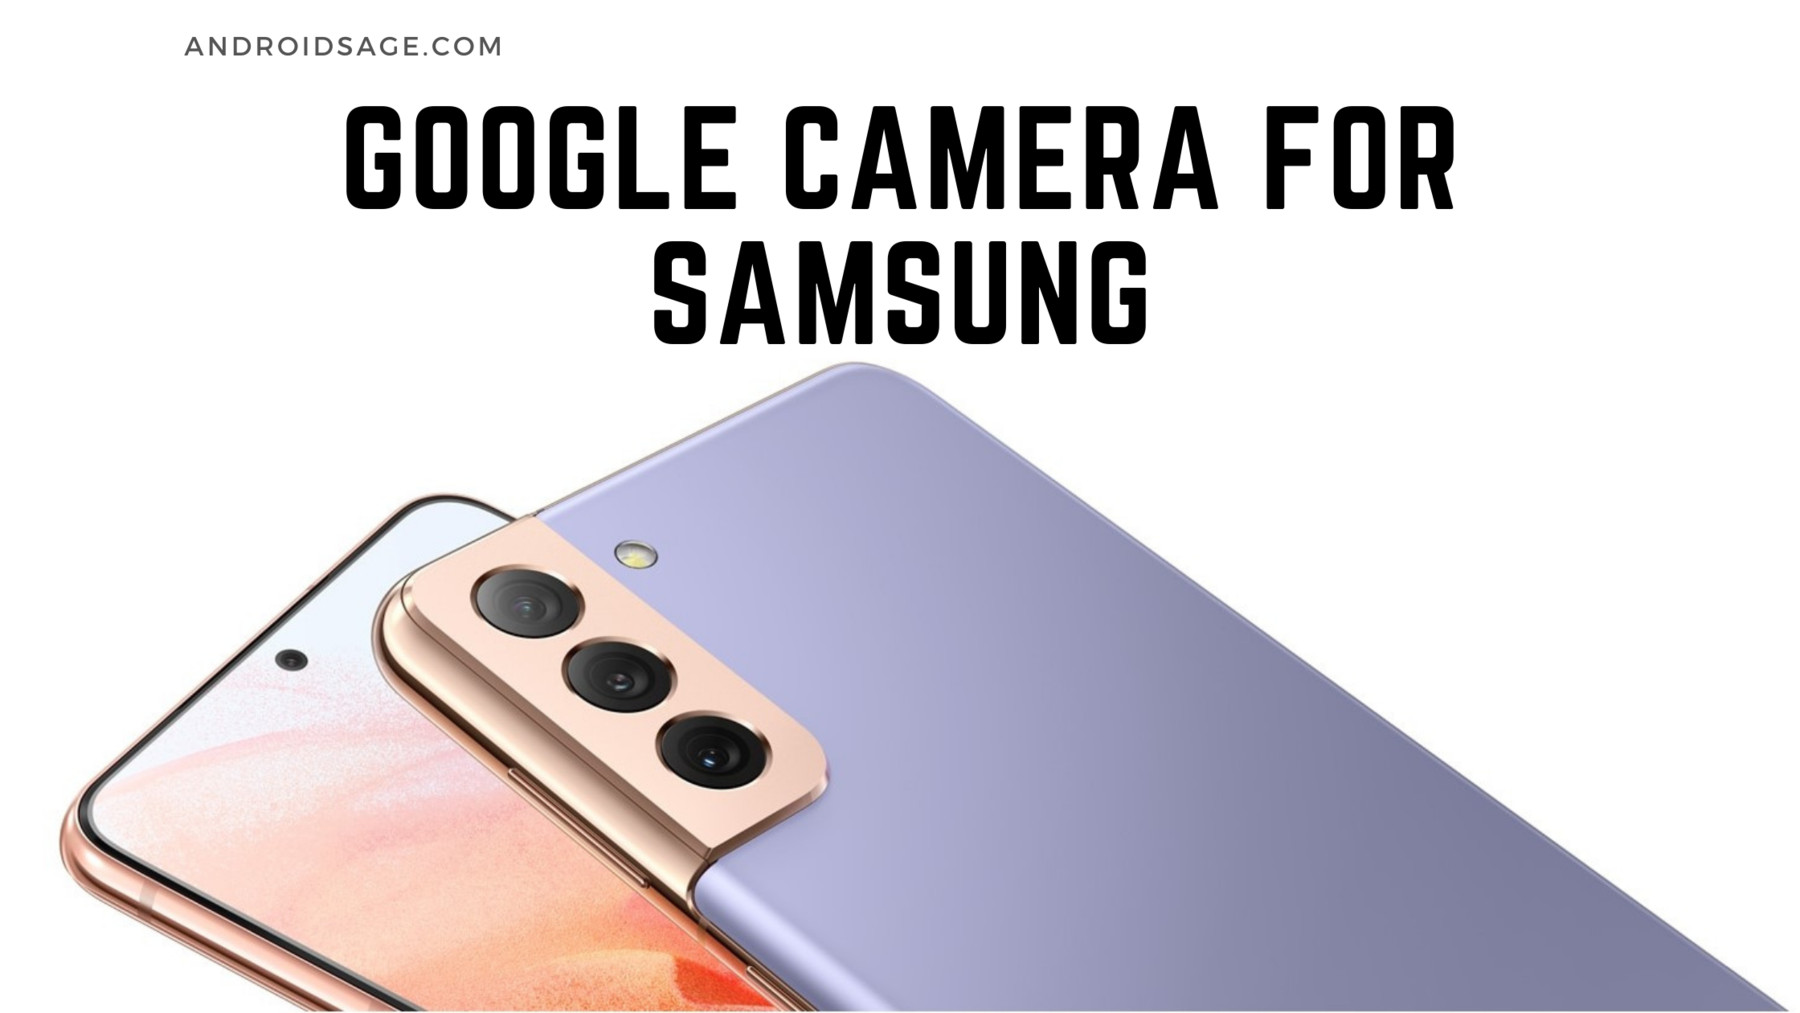 Google Camera APK for Samsung Galaxy S20, S21, Note 20